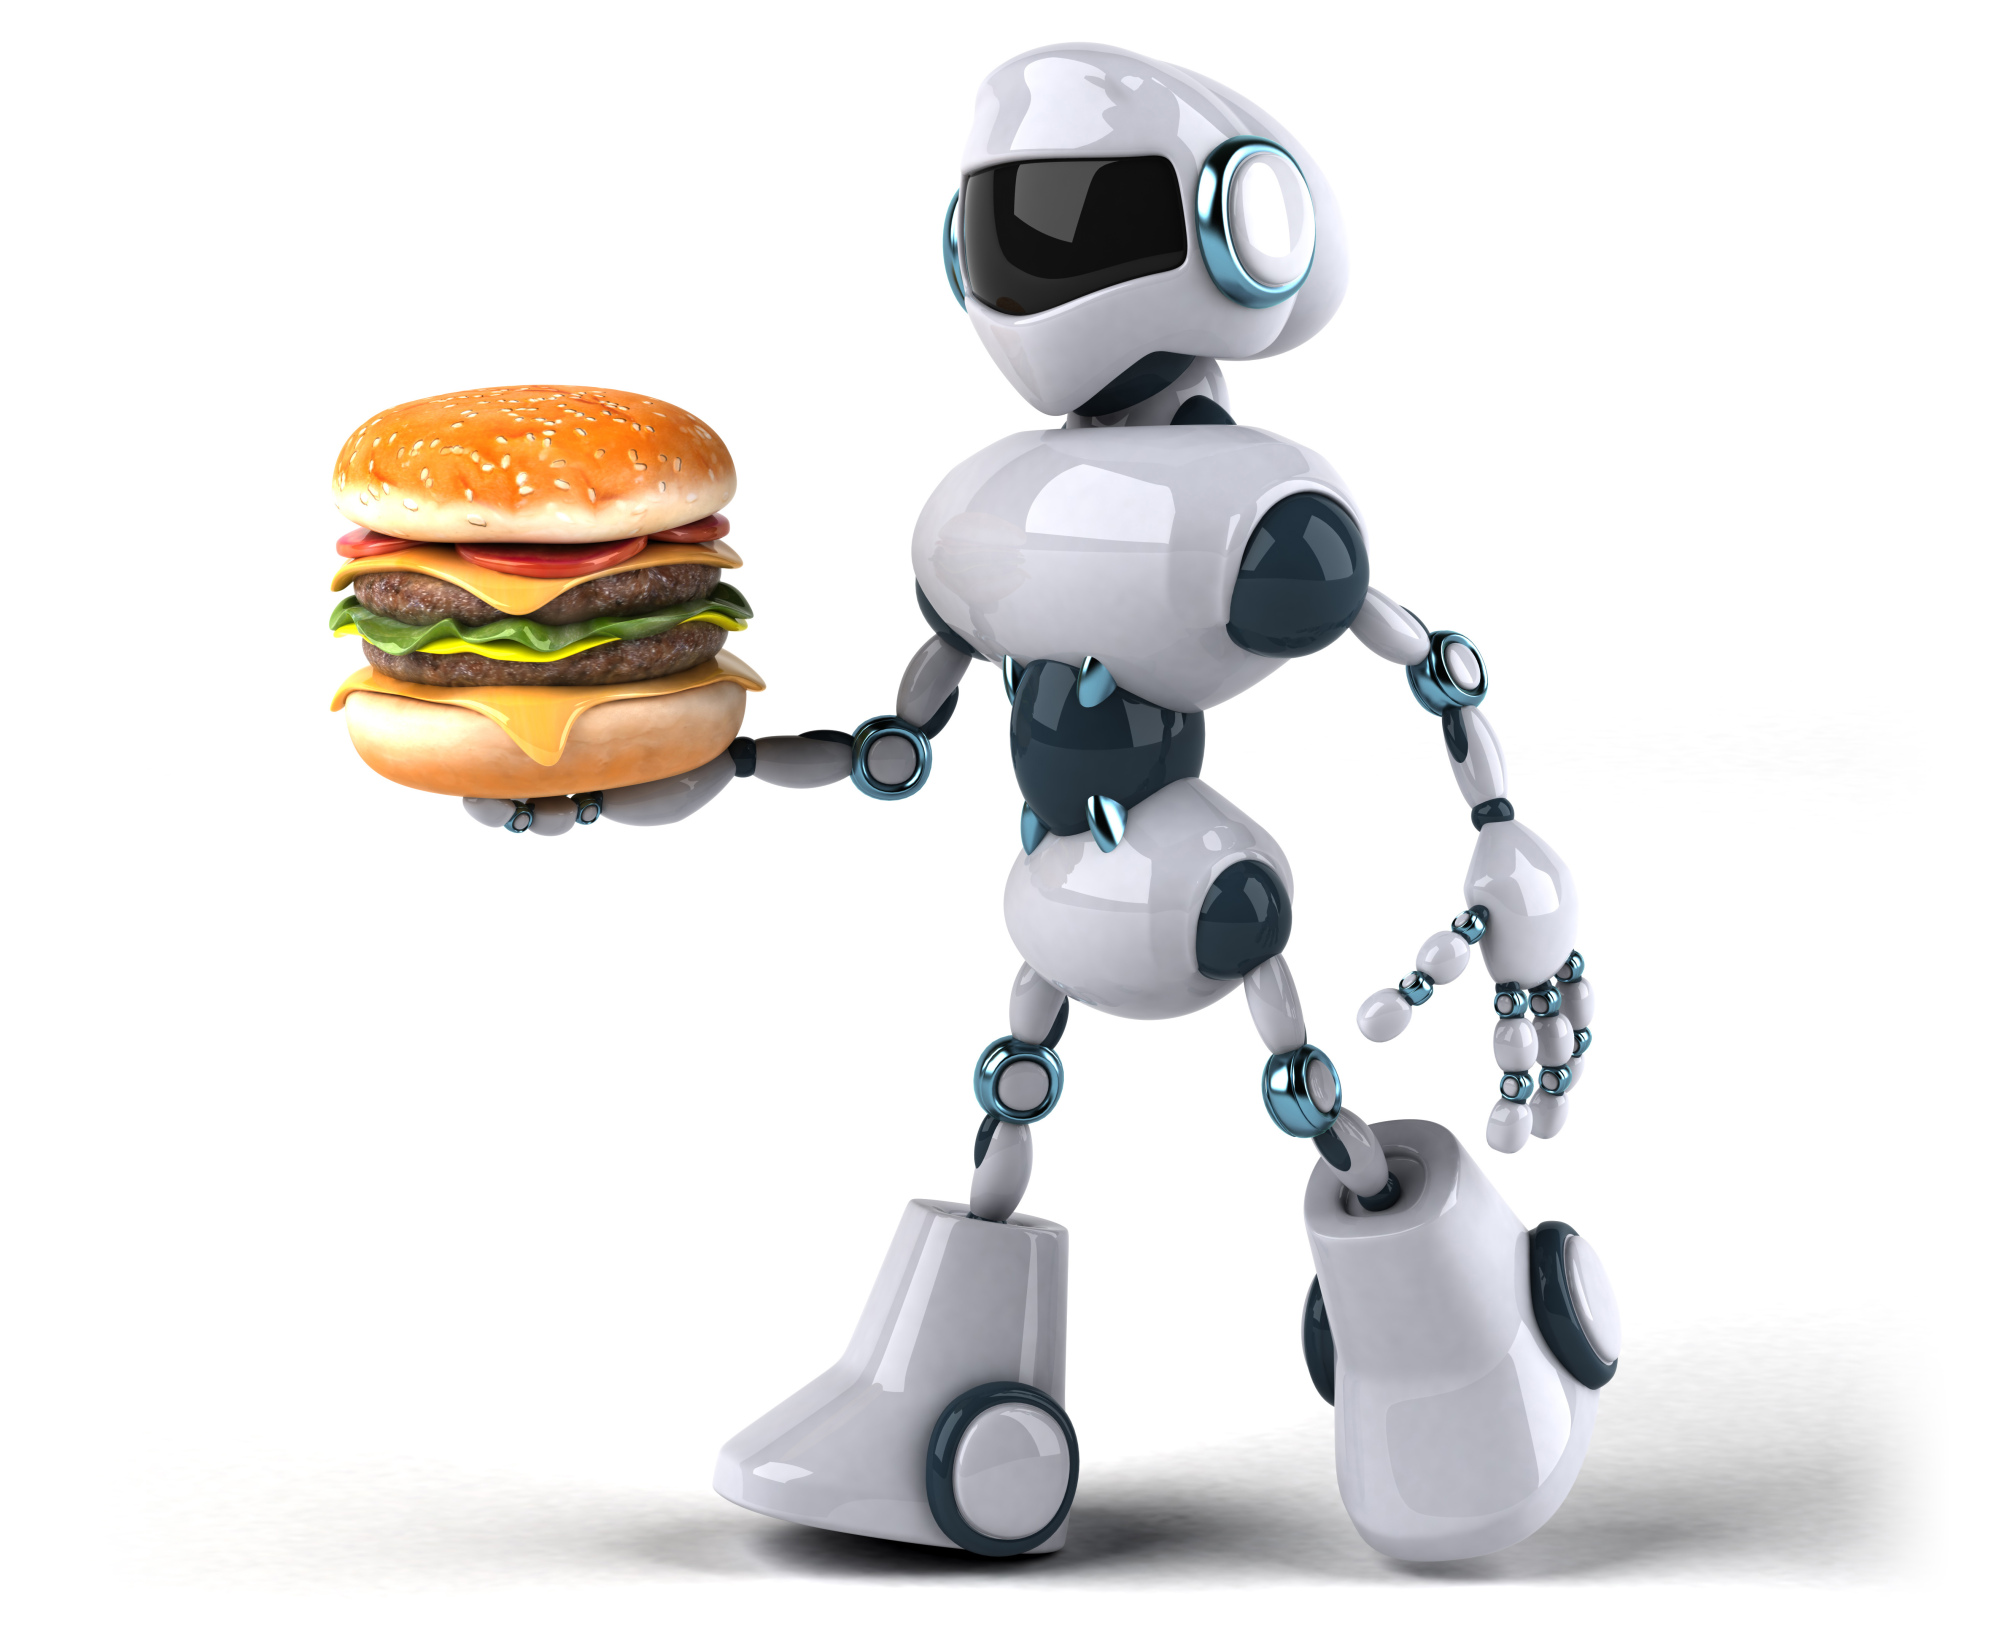 Not just yet: Although robots aren't involved, Shake Shack's Astor Place location in New York will use automated kiosks to take customer orders. | ISTOCK